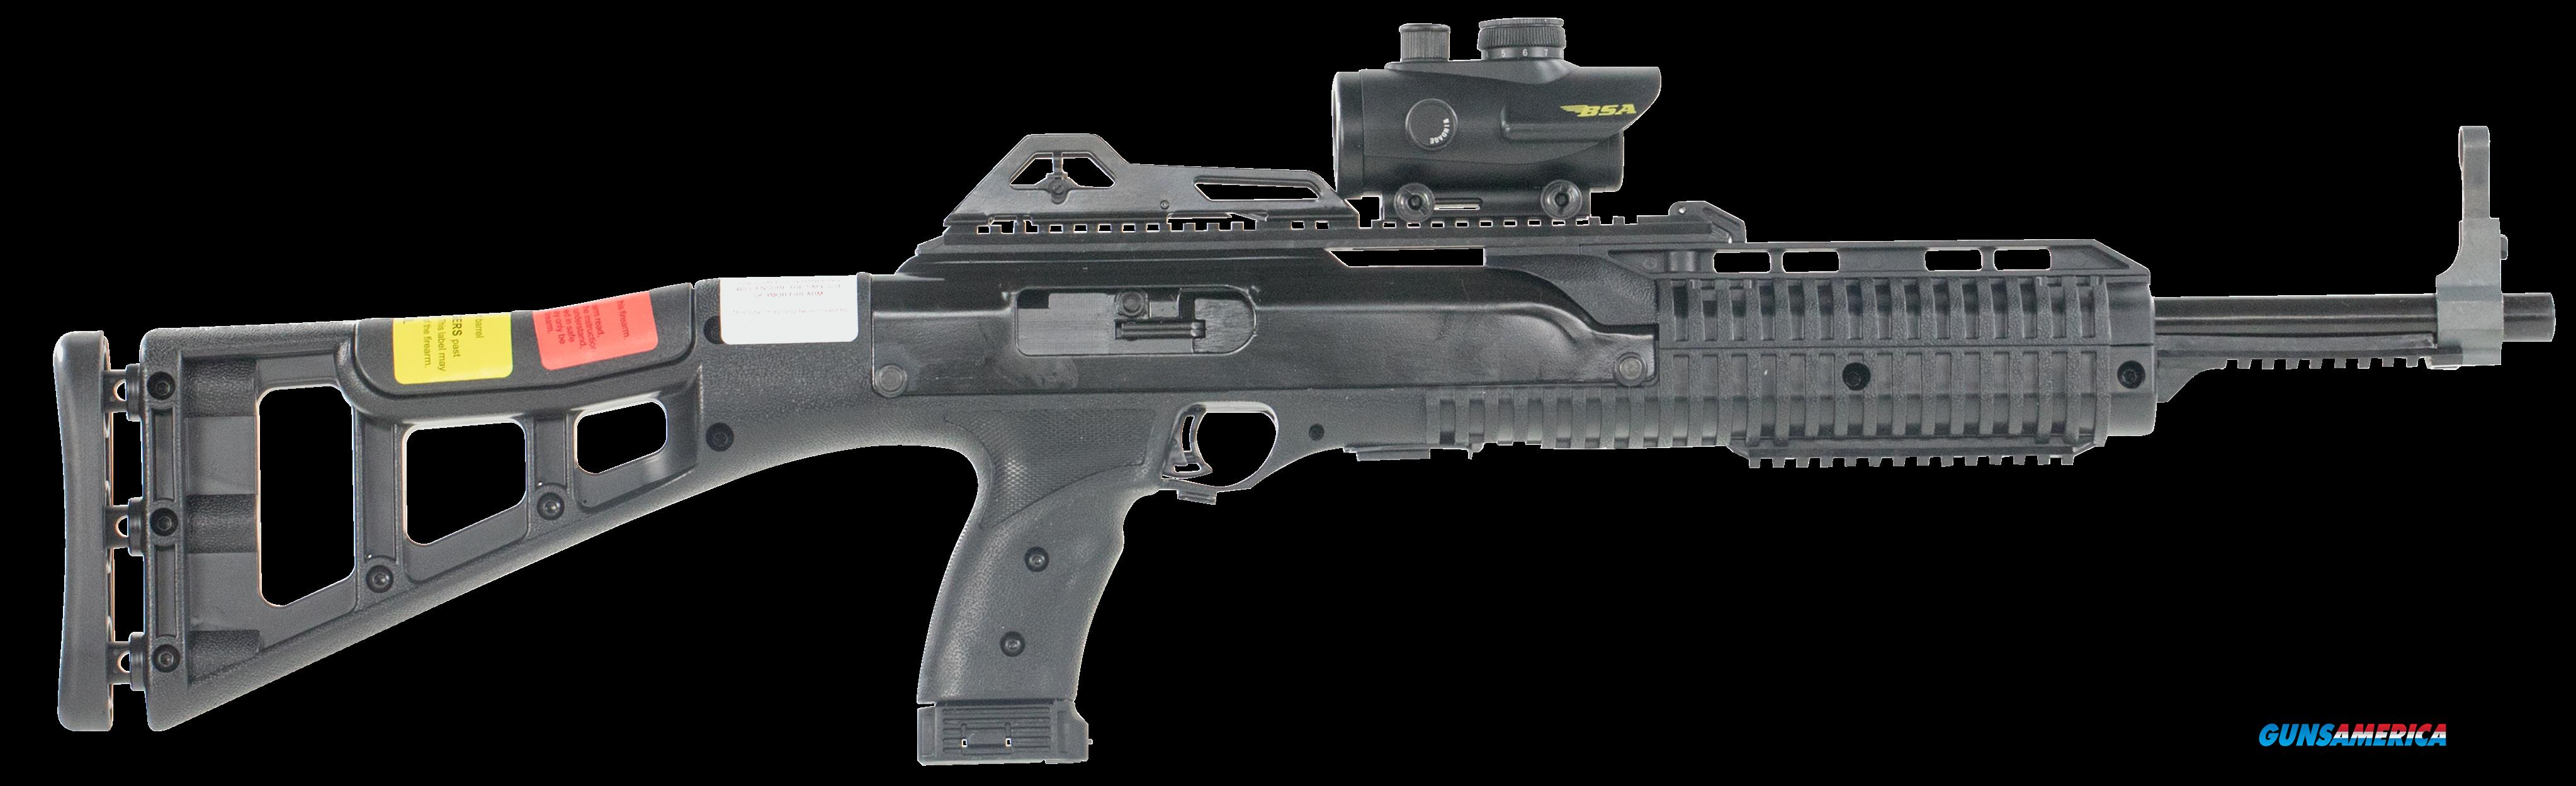 "Hi-Point 995RDTS 995TS Carbine Semi-Automatic 9mm Luger 16.5"" 10+1 Red Dot Polymer Skeleton Black  Guns > Rifles > Hi Point Rifles"